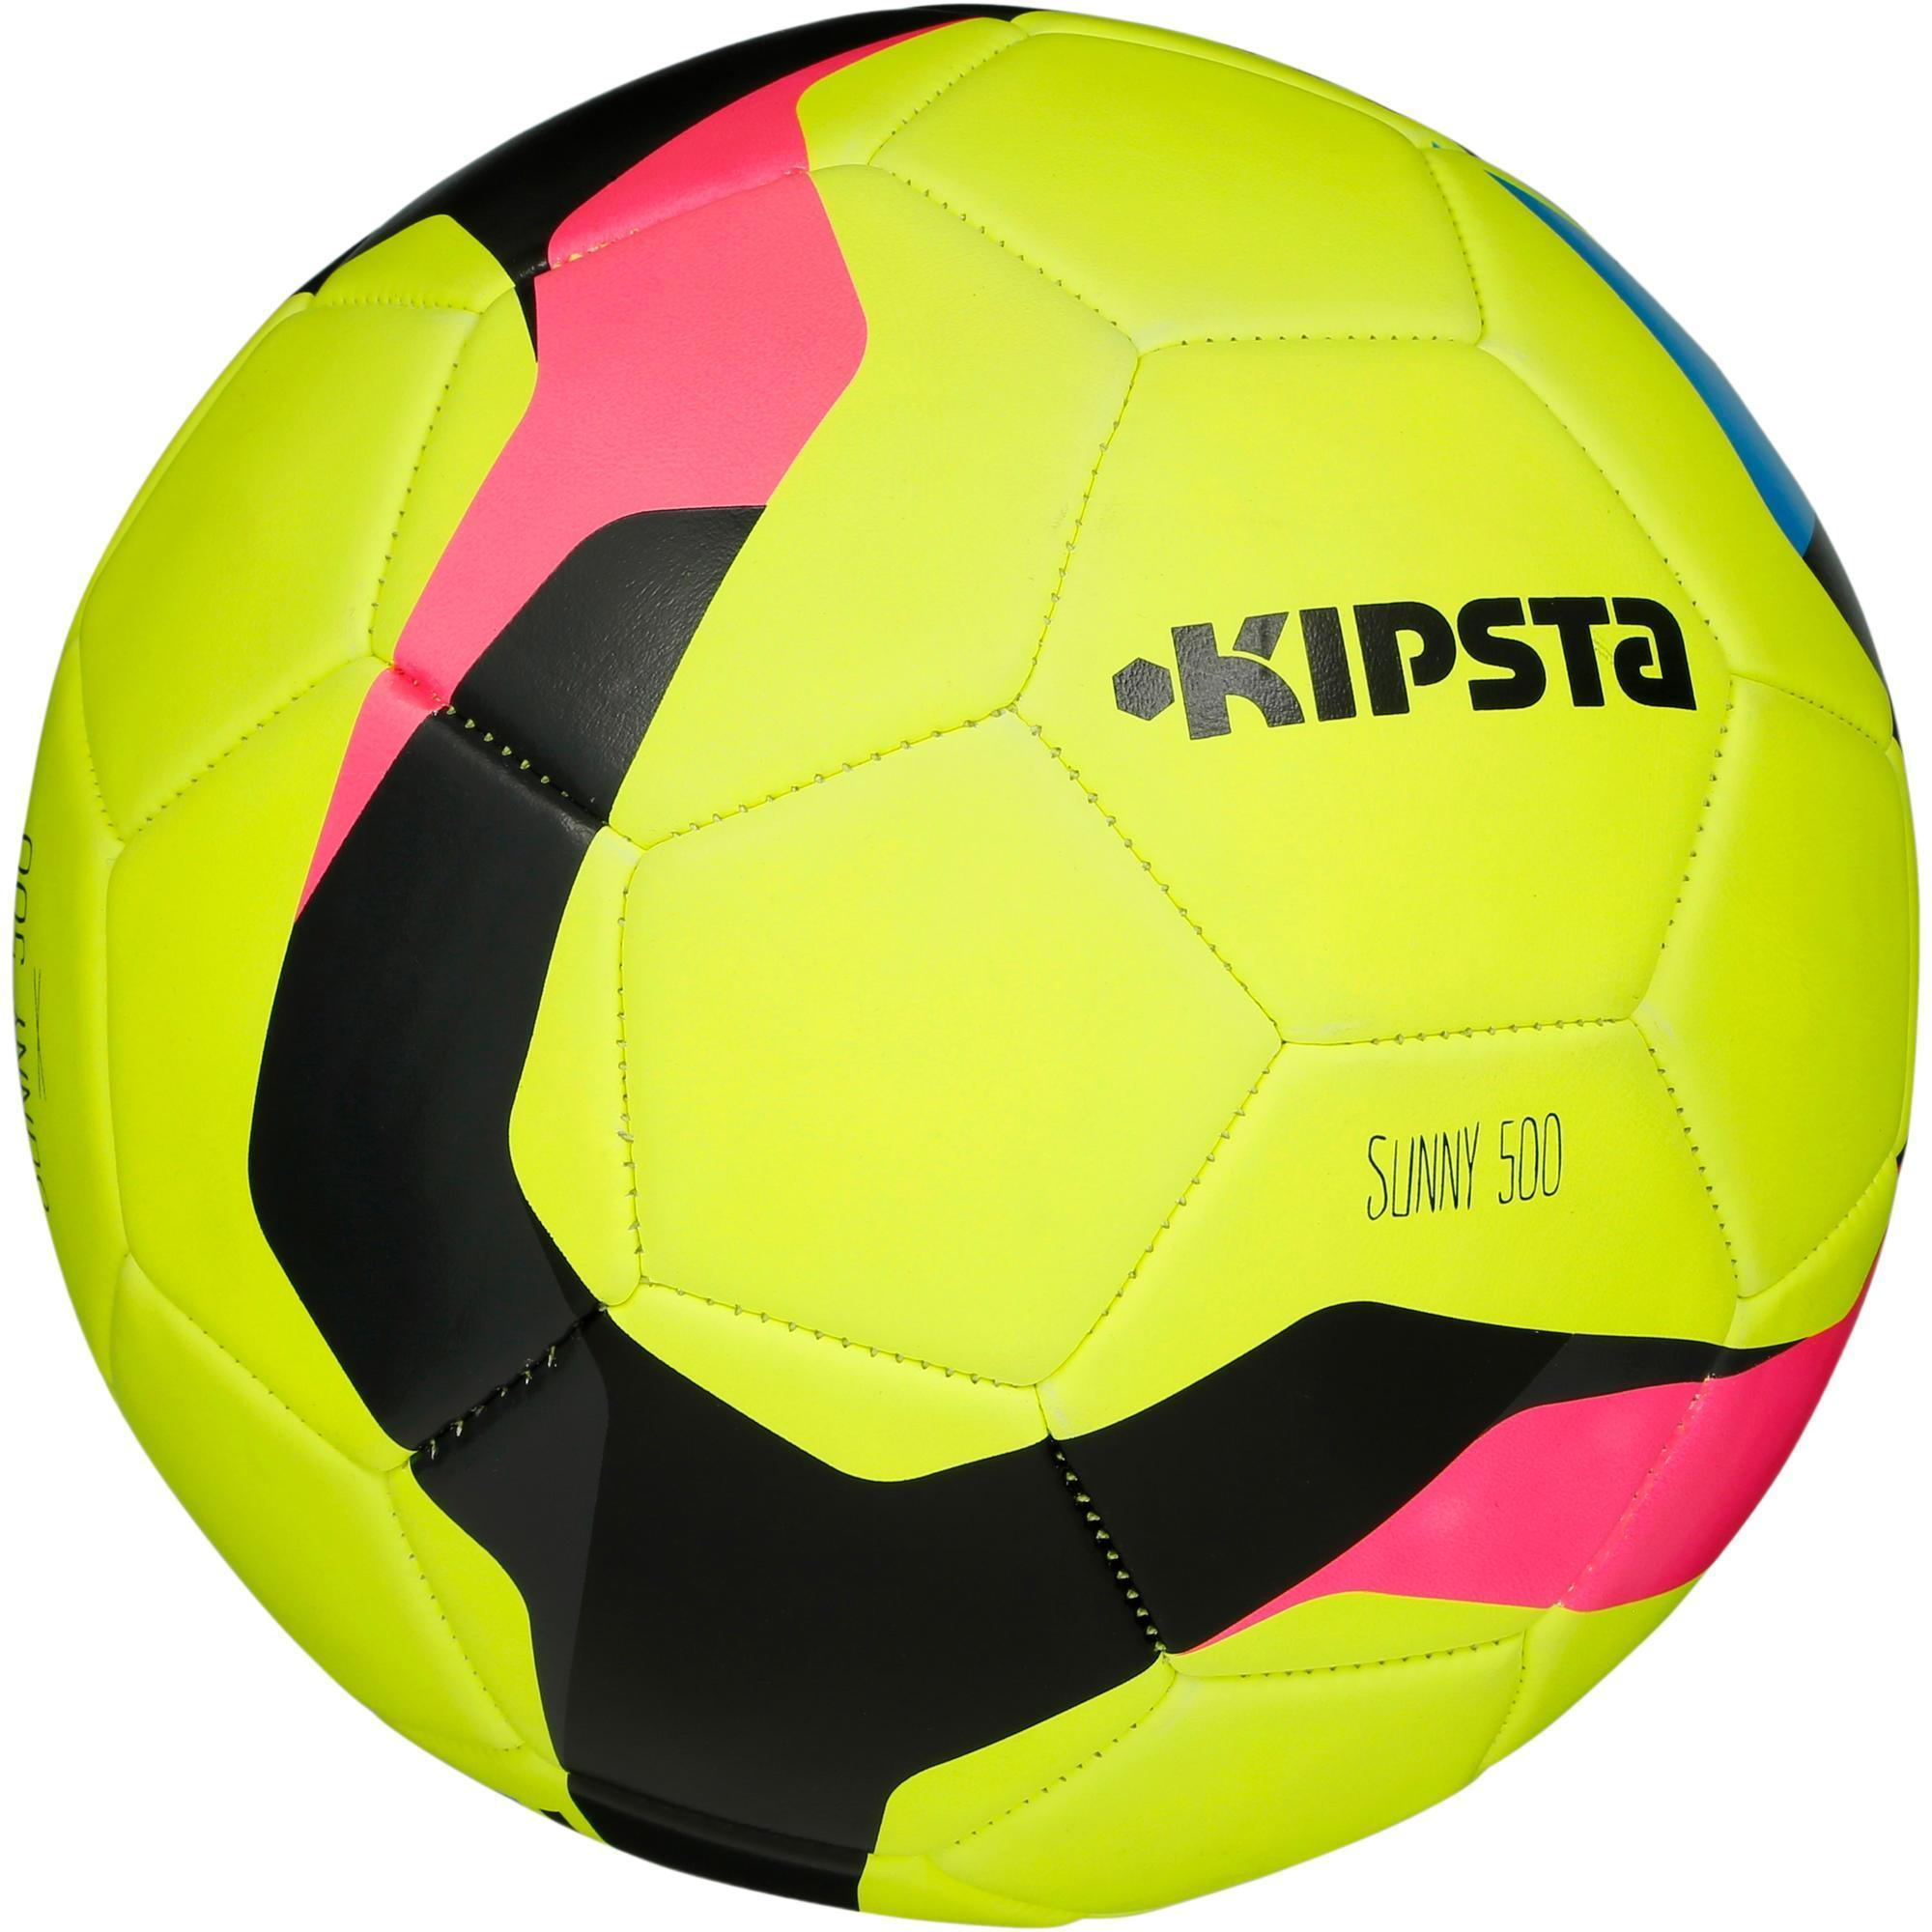 ballon de football sunny 500 taille 5 jaune rose noir kipsta by decathlon. Black Bedroom Furniture Sets. Home Design Ideas